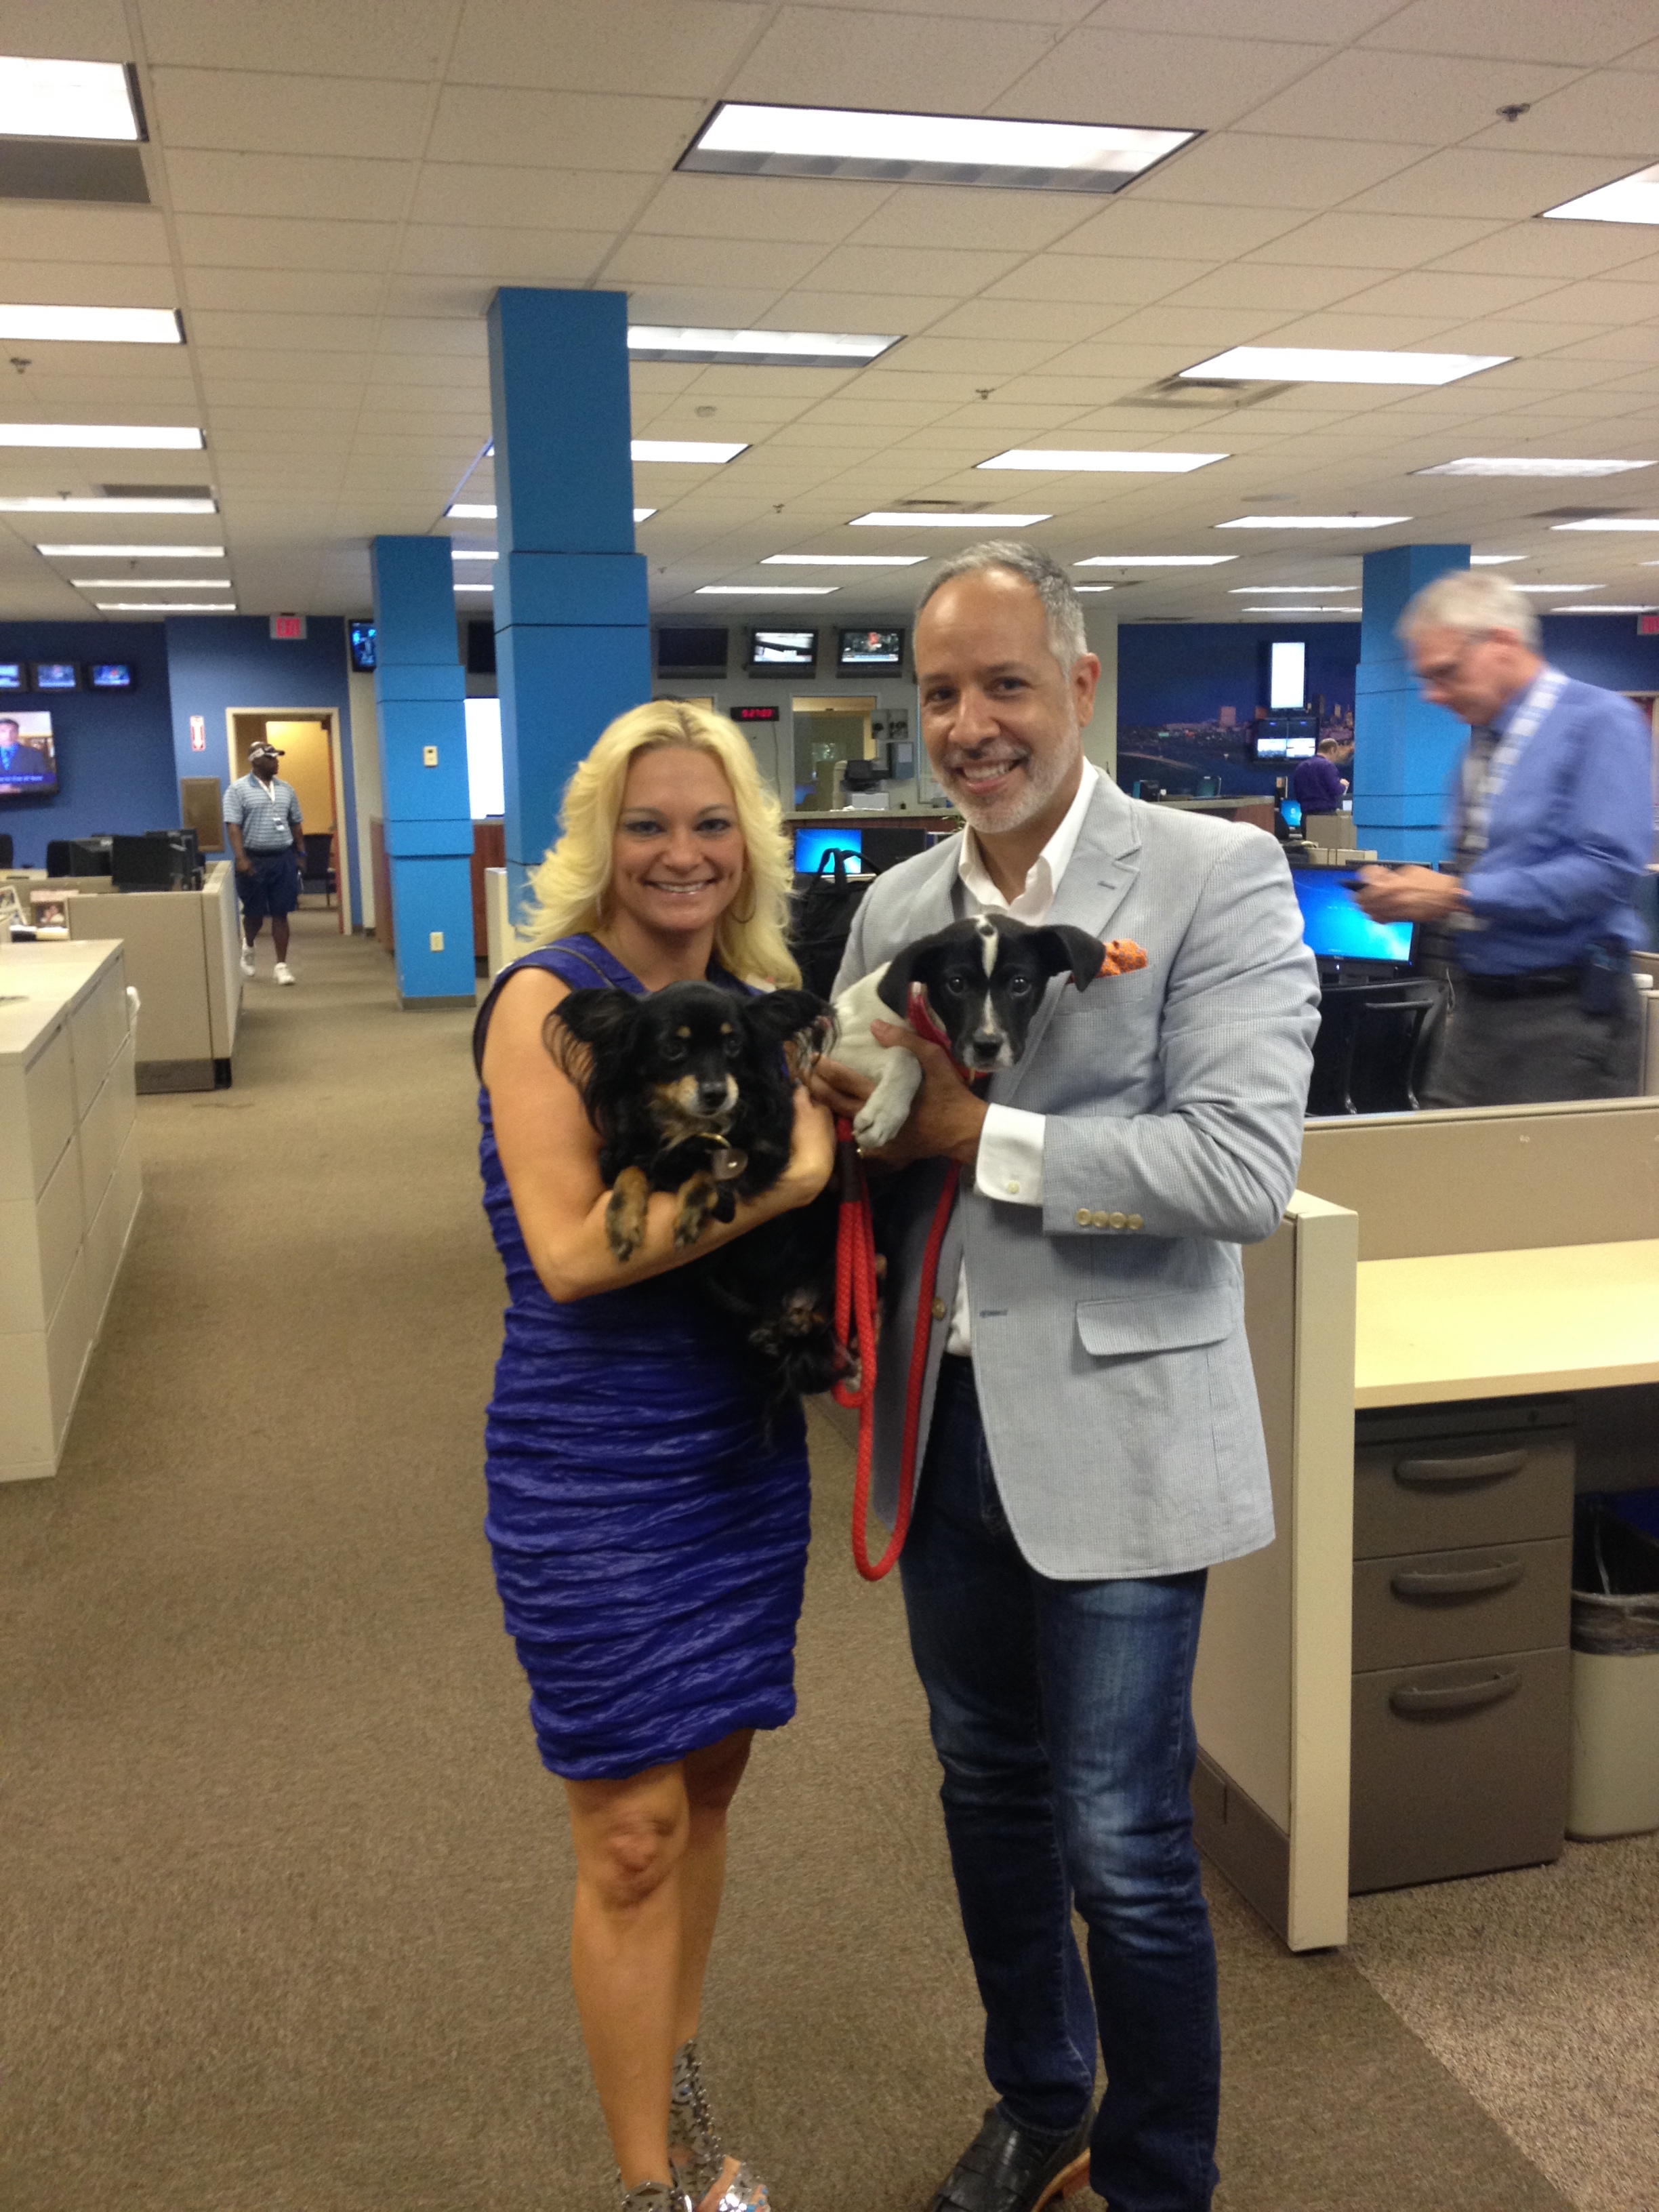 Getting ready to chat about the 7th Annual Doggies on the Catwalk with Stacey Weiss. CBS 46